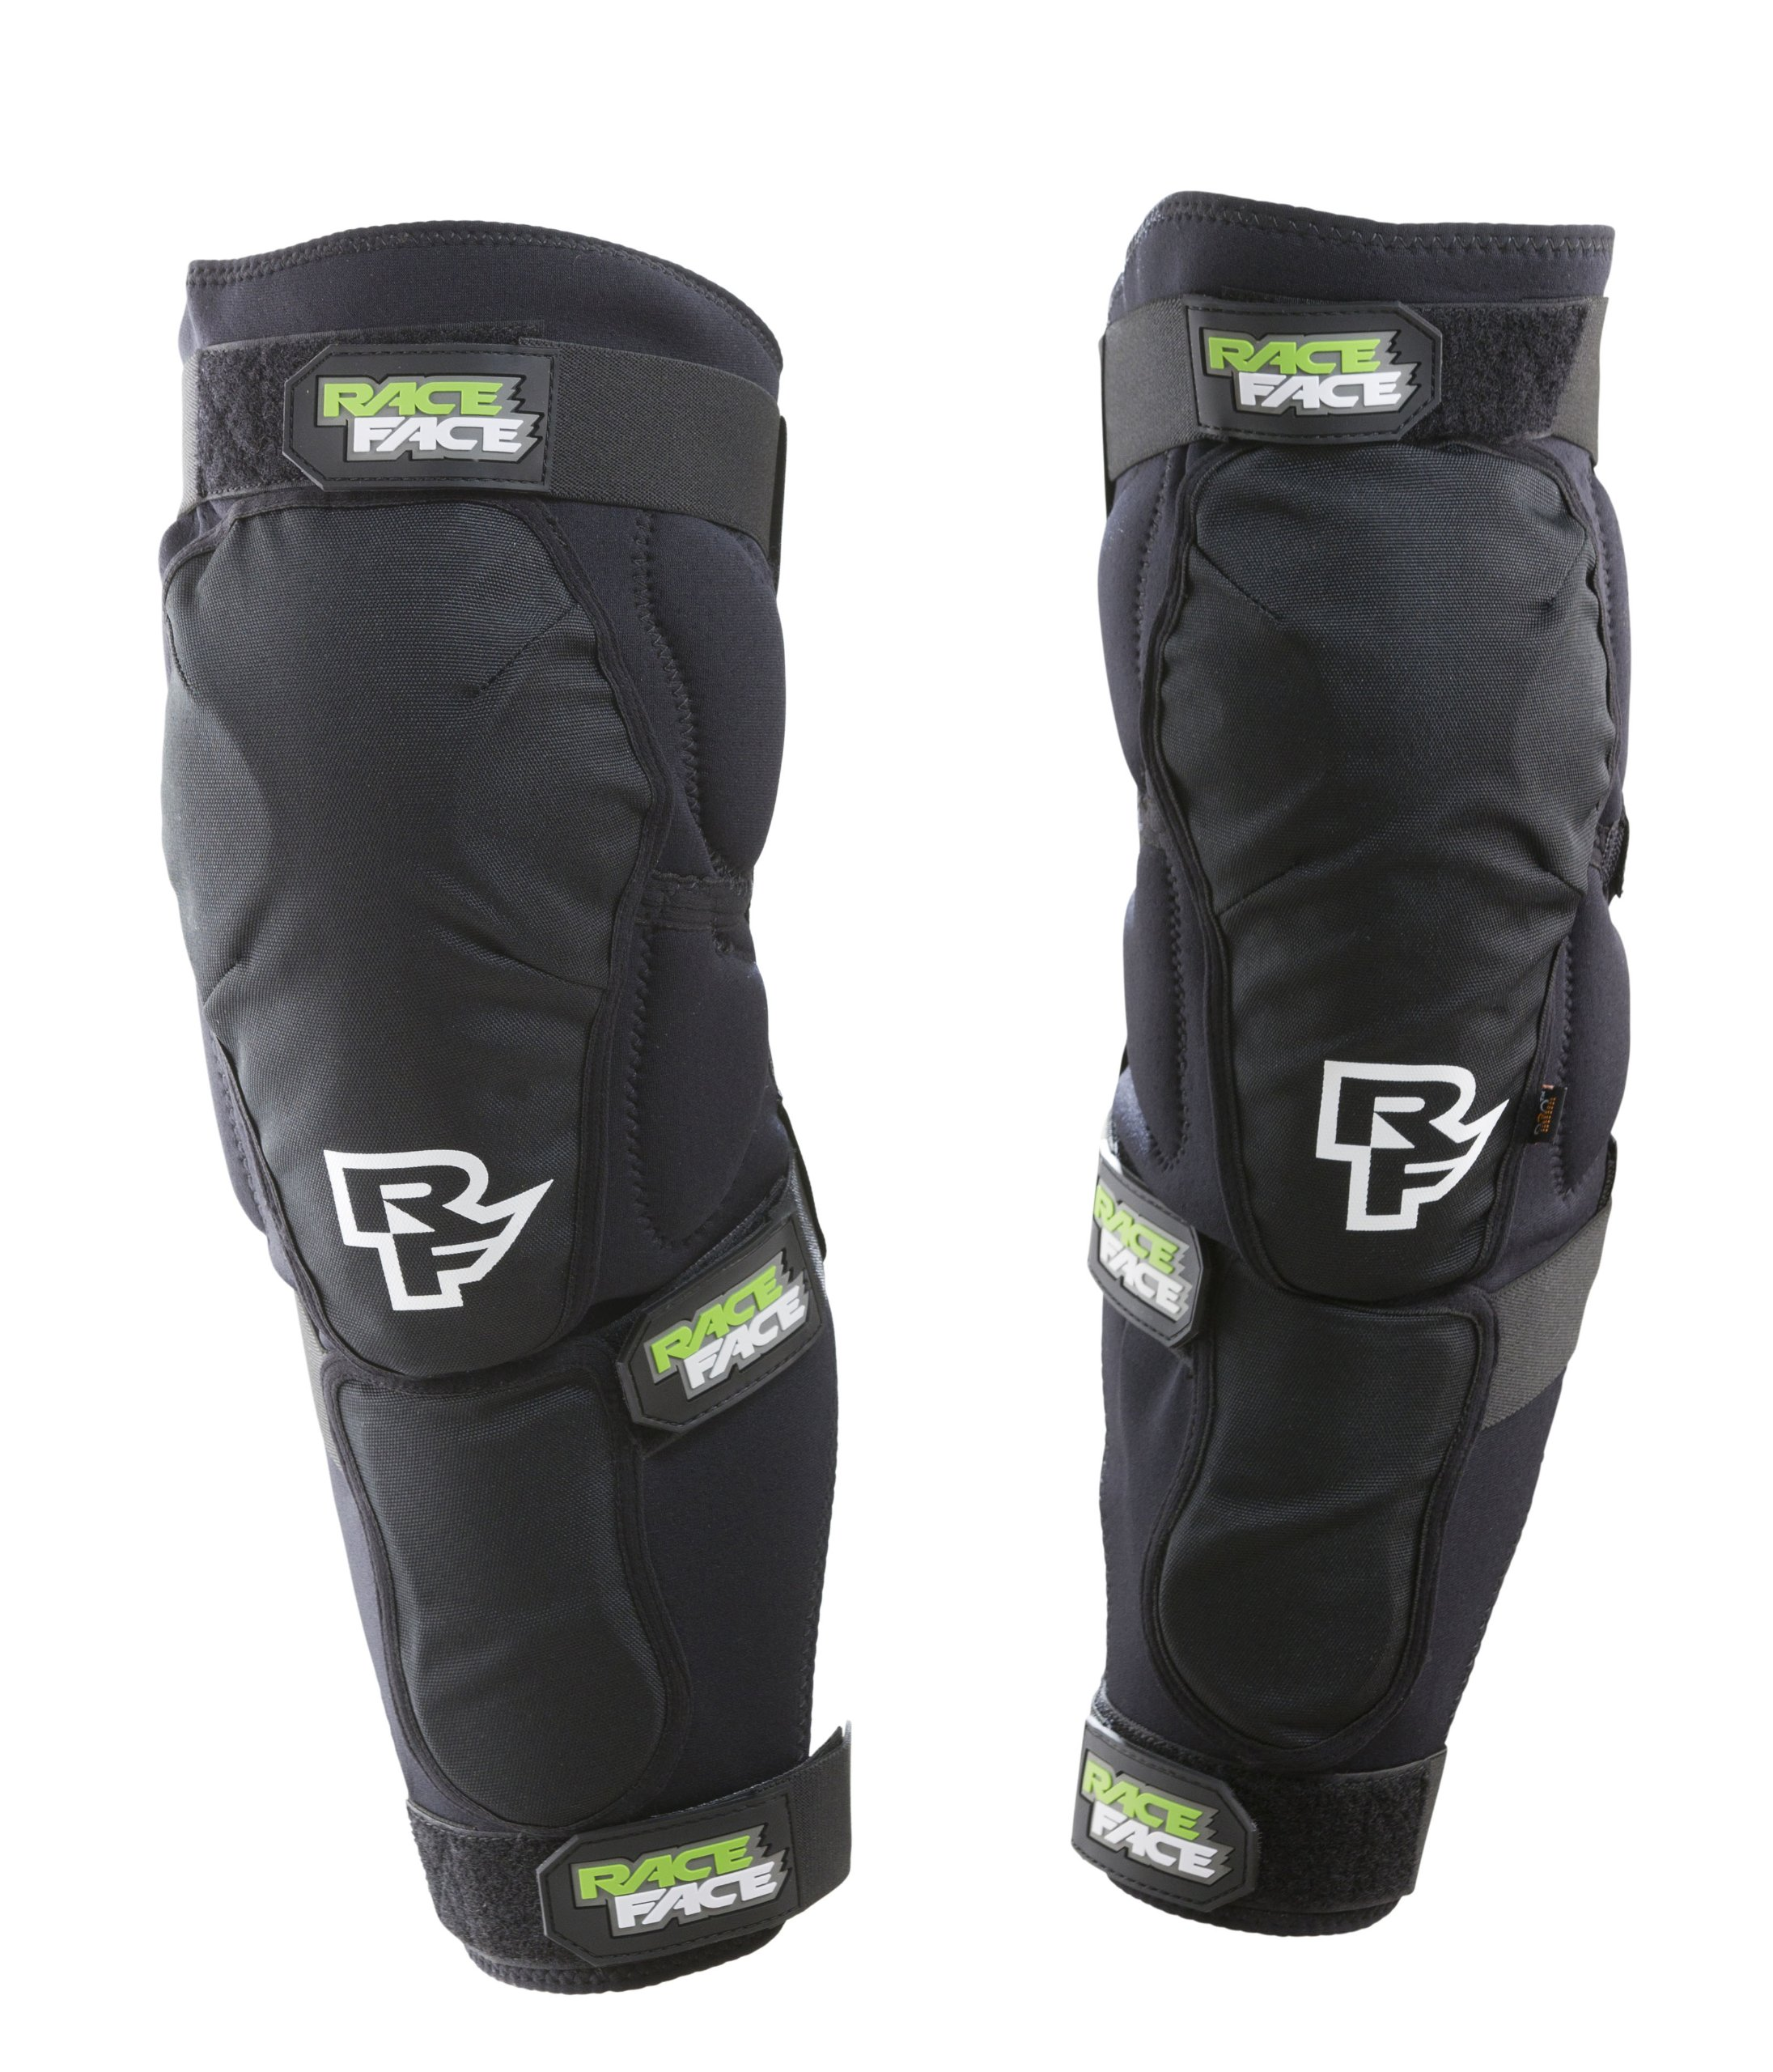 Race Face Flank Leg Guard, Stealth, Large by RaceFace